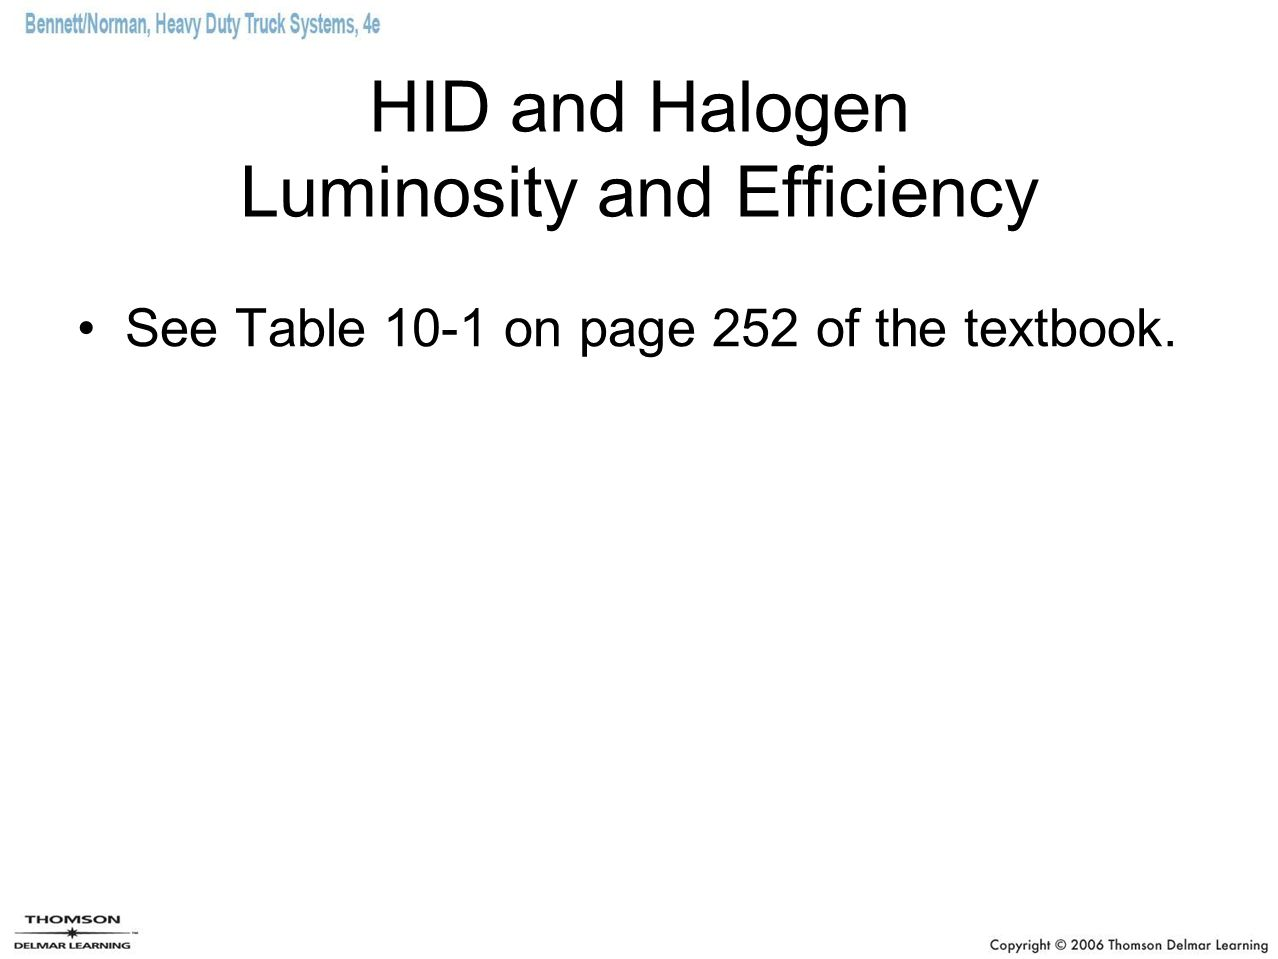 HID and Halogen Luminosity and Efficiency